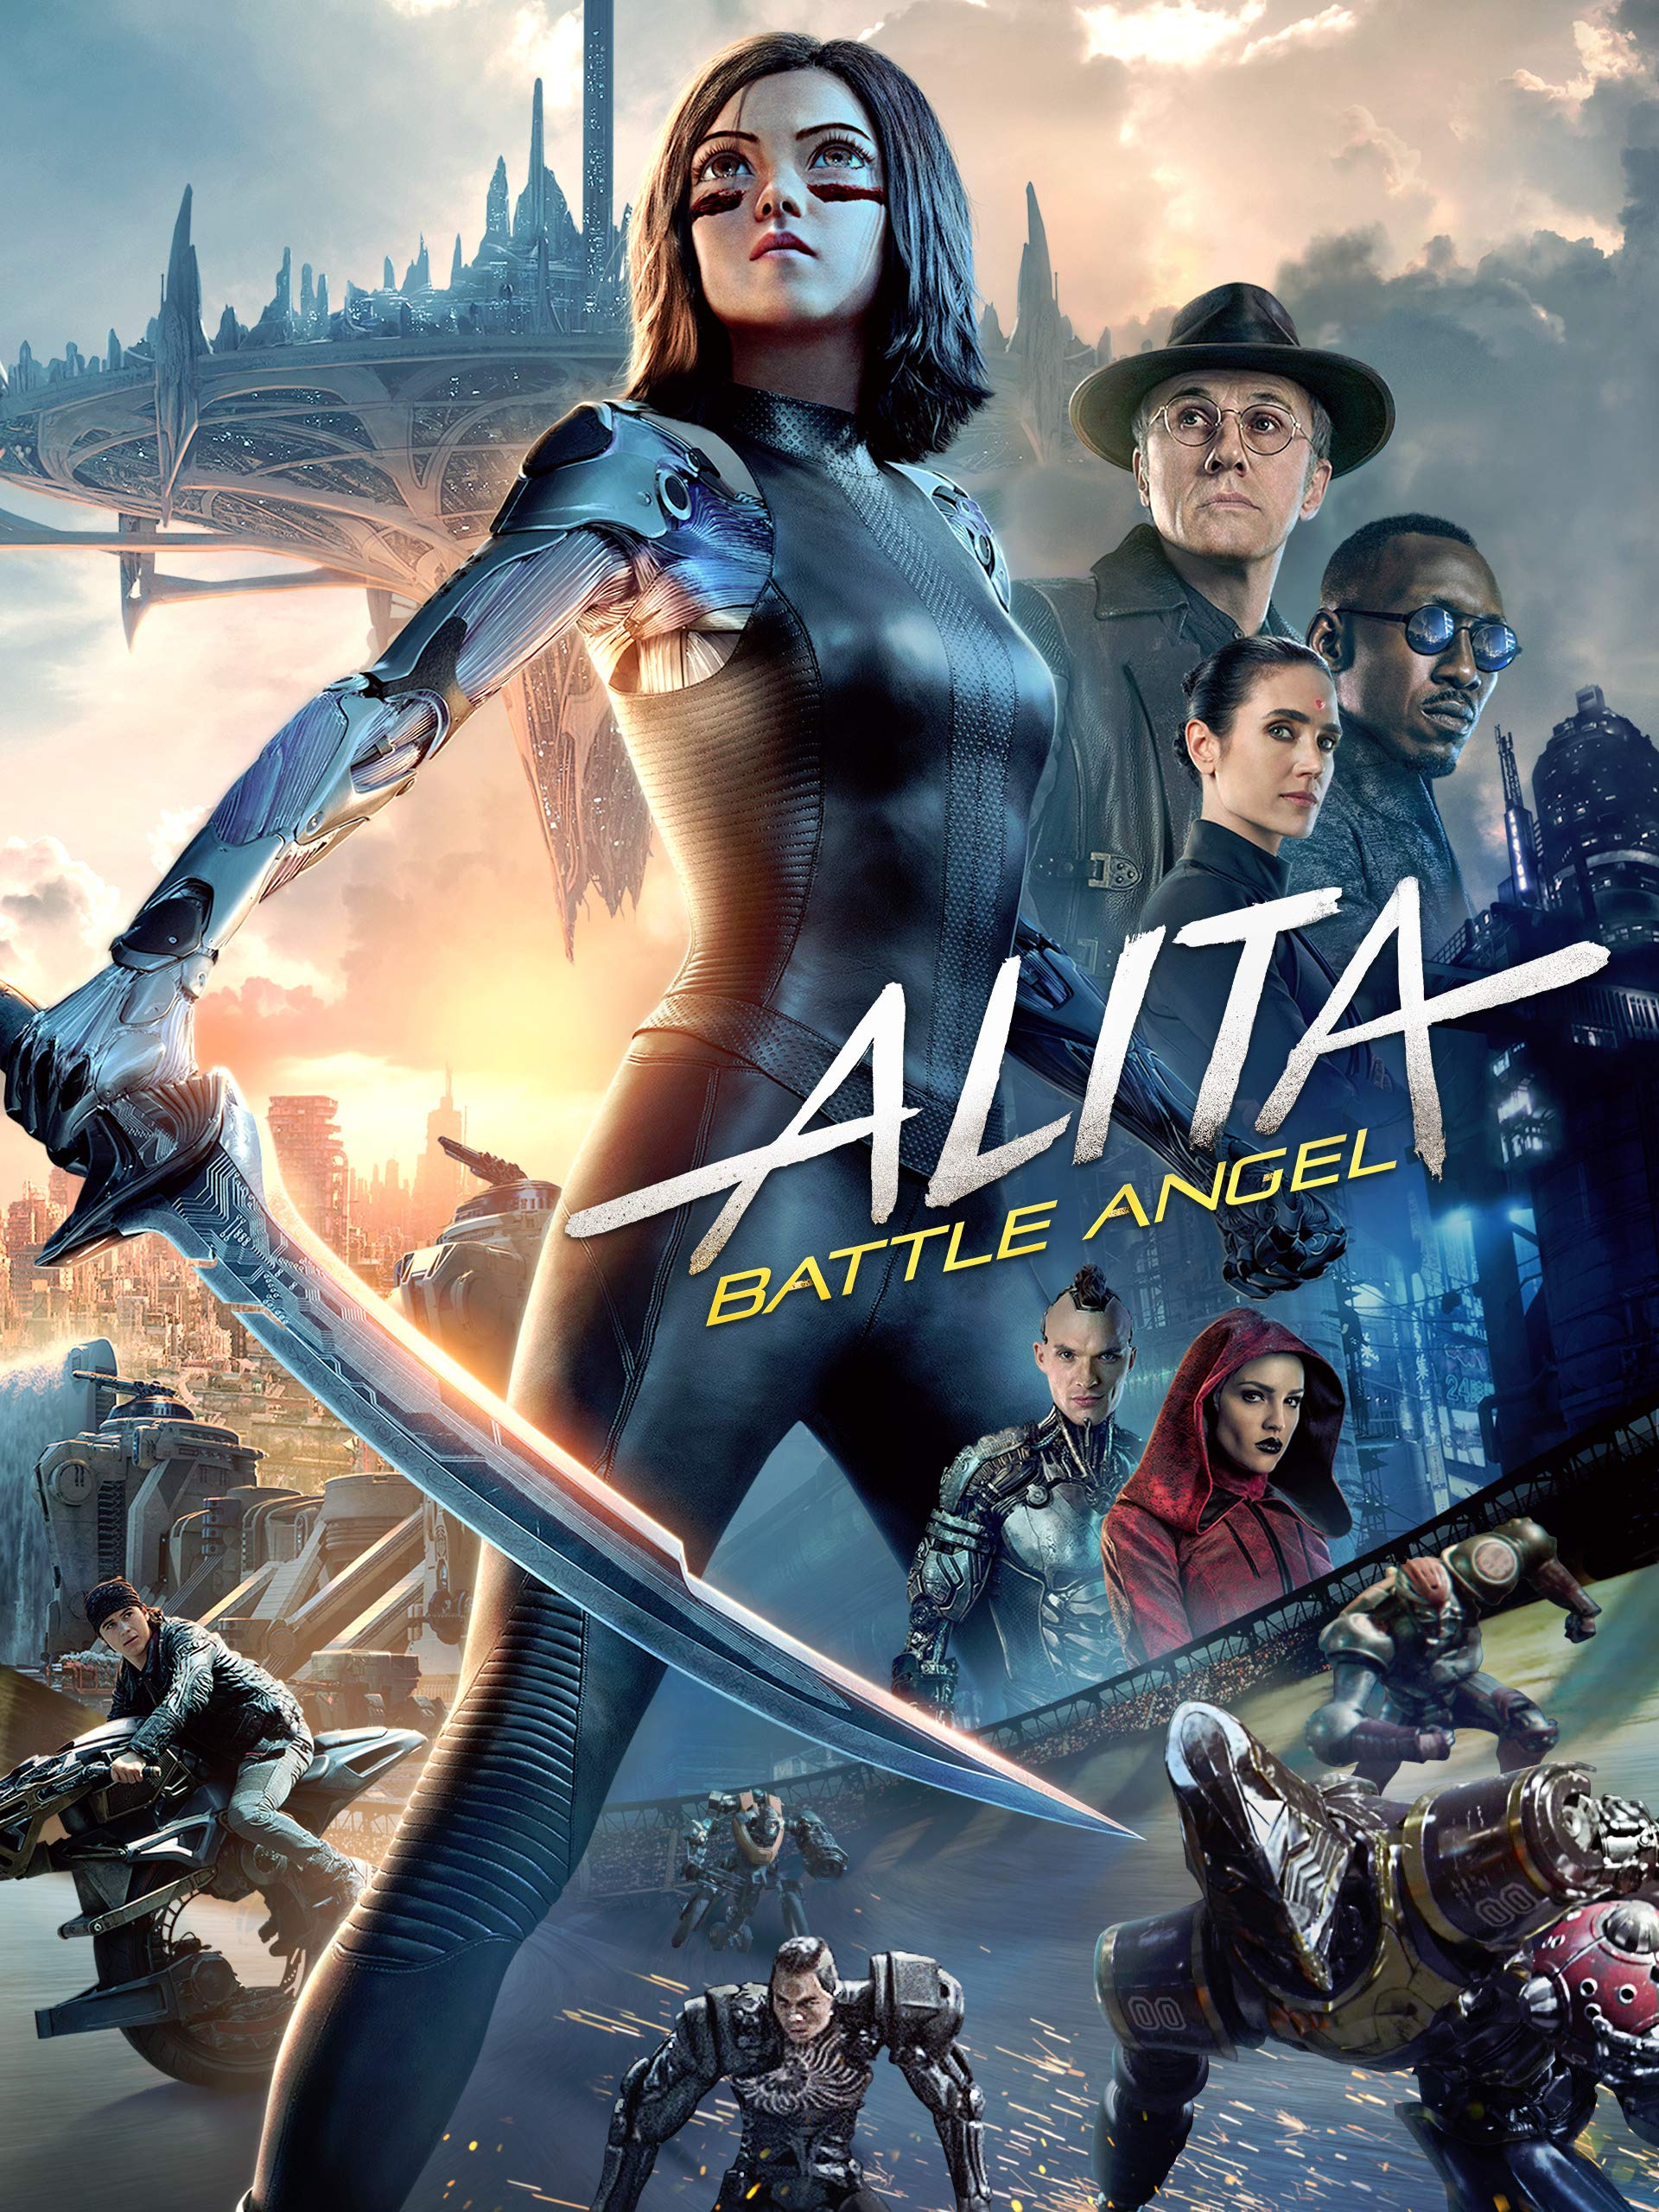 Alita Battle Angel - Credit / score mixer assistant